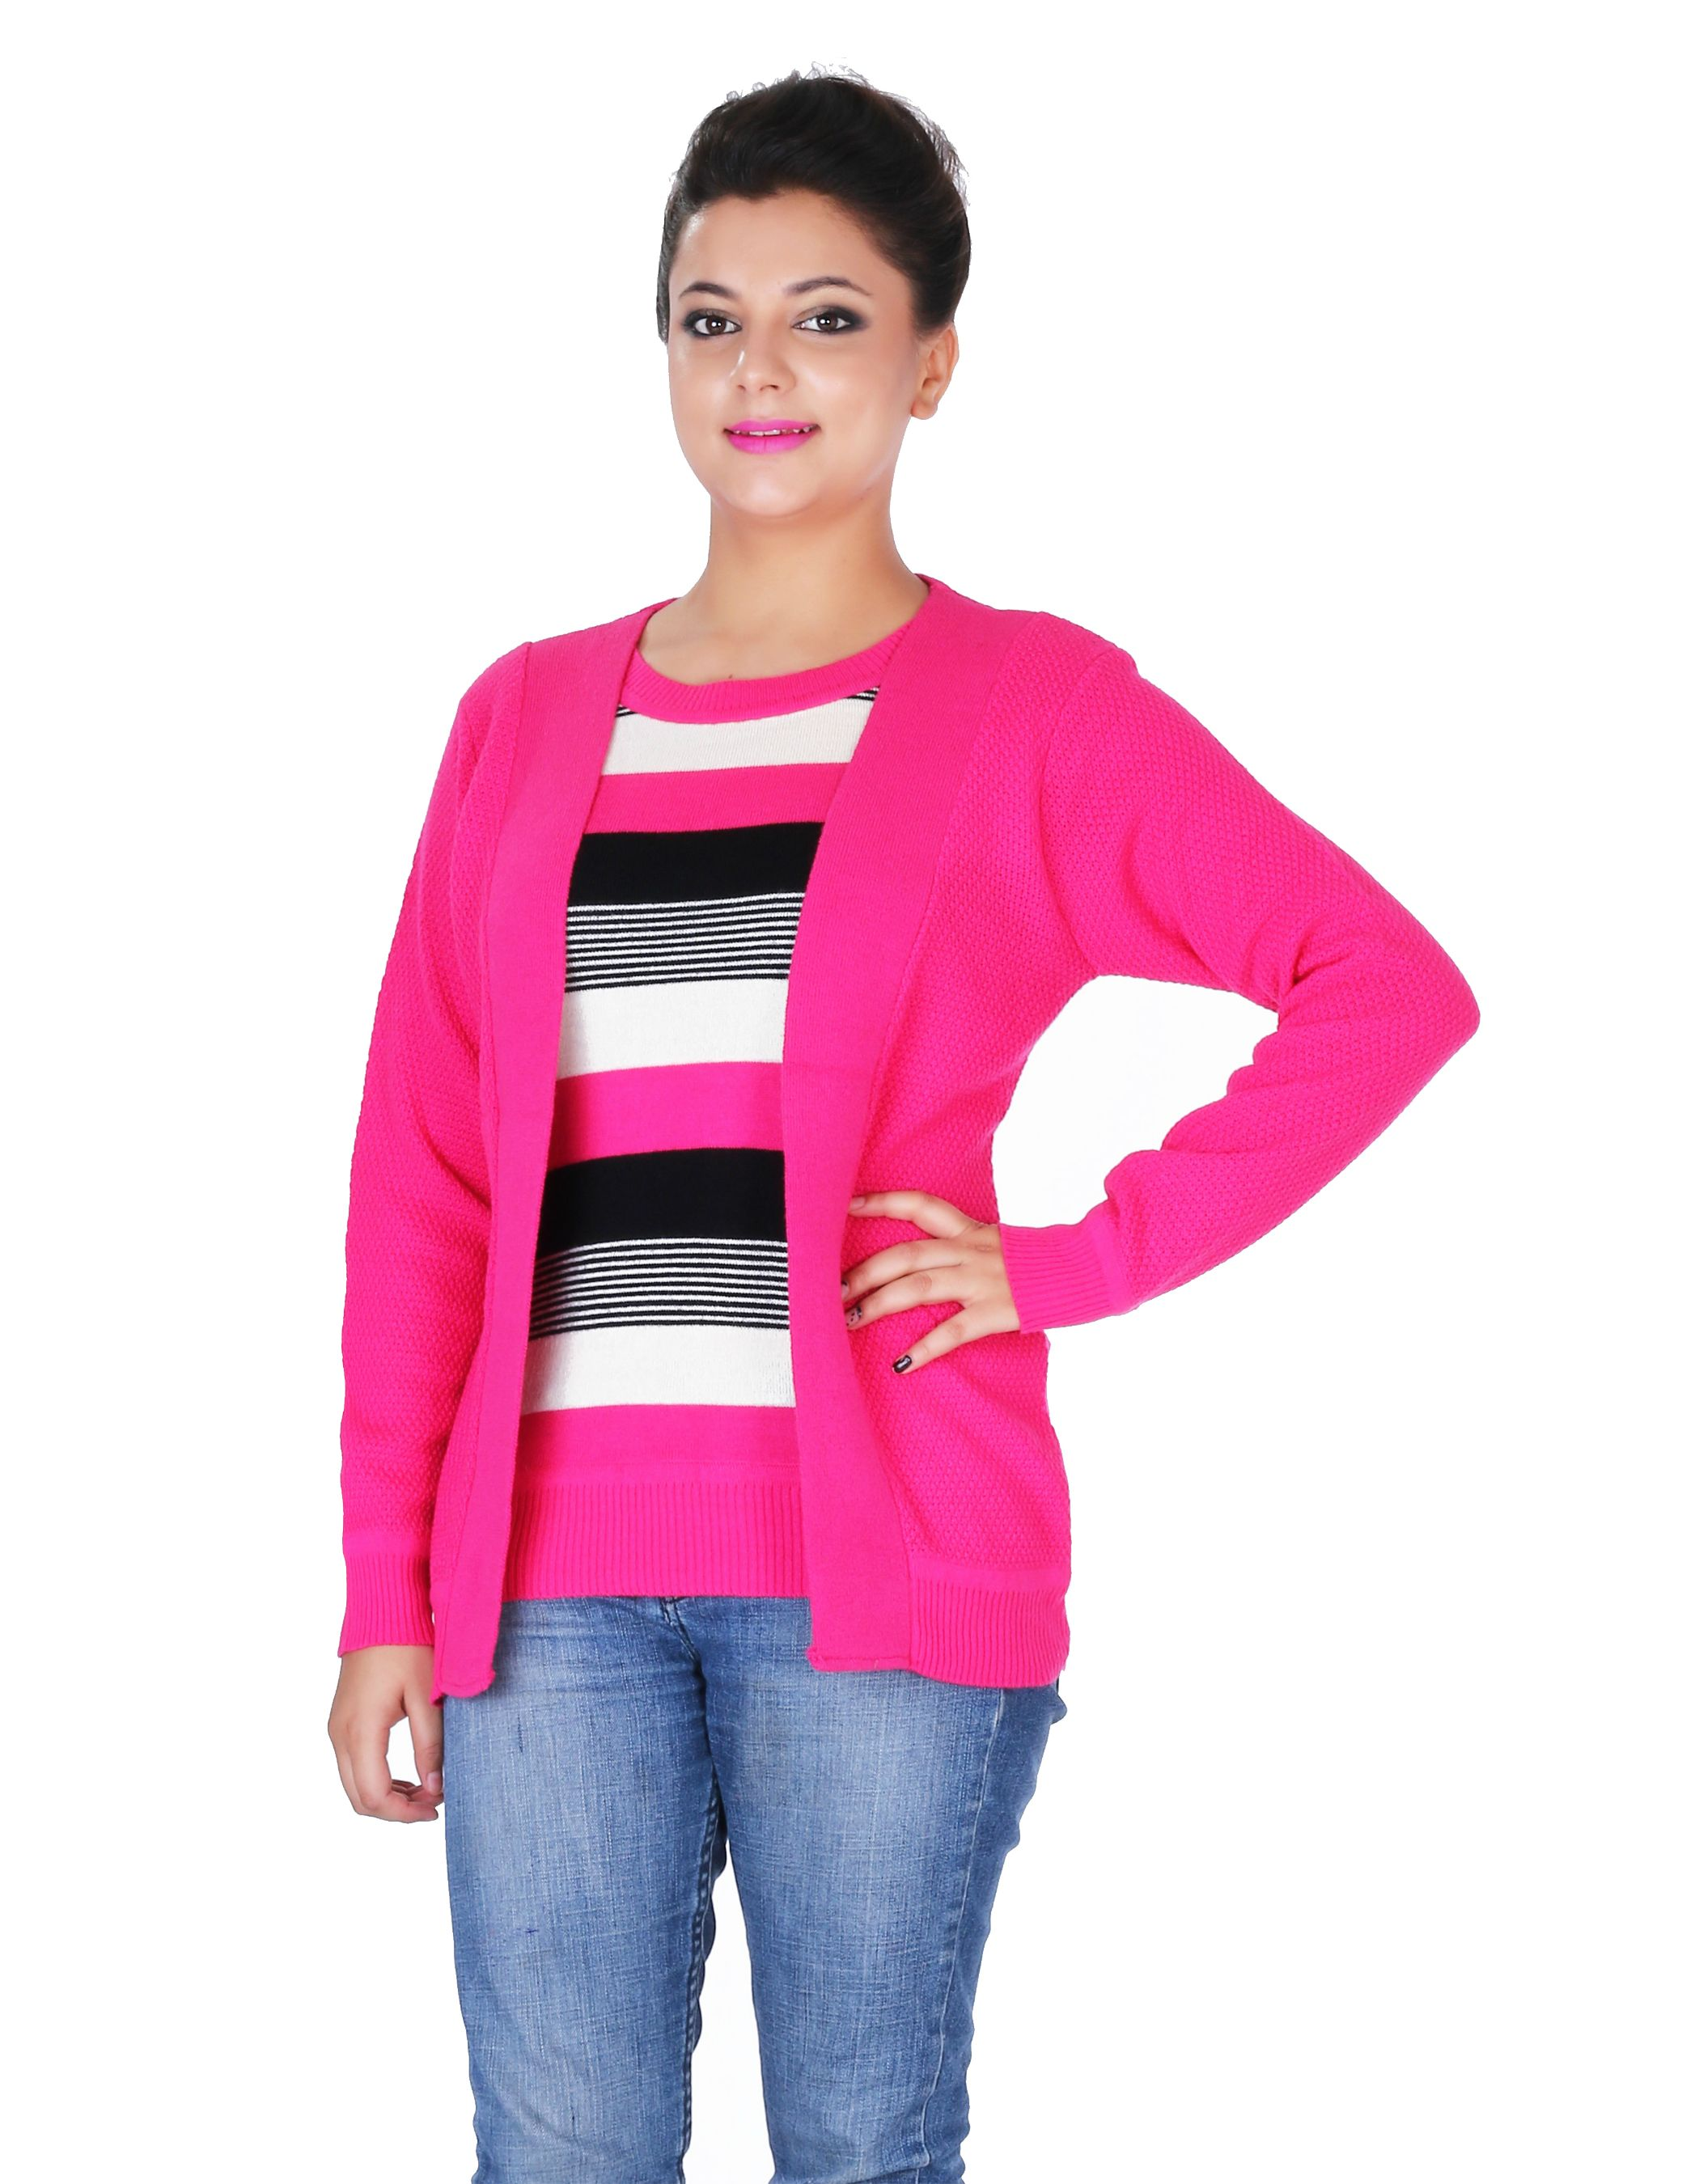 Renka Pink Casual Knitted Winter Top-(L) -2522-bright-pink